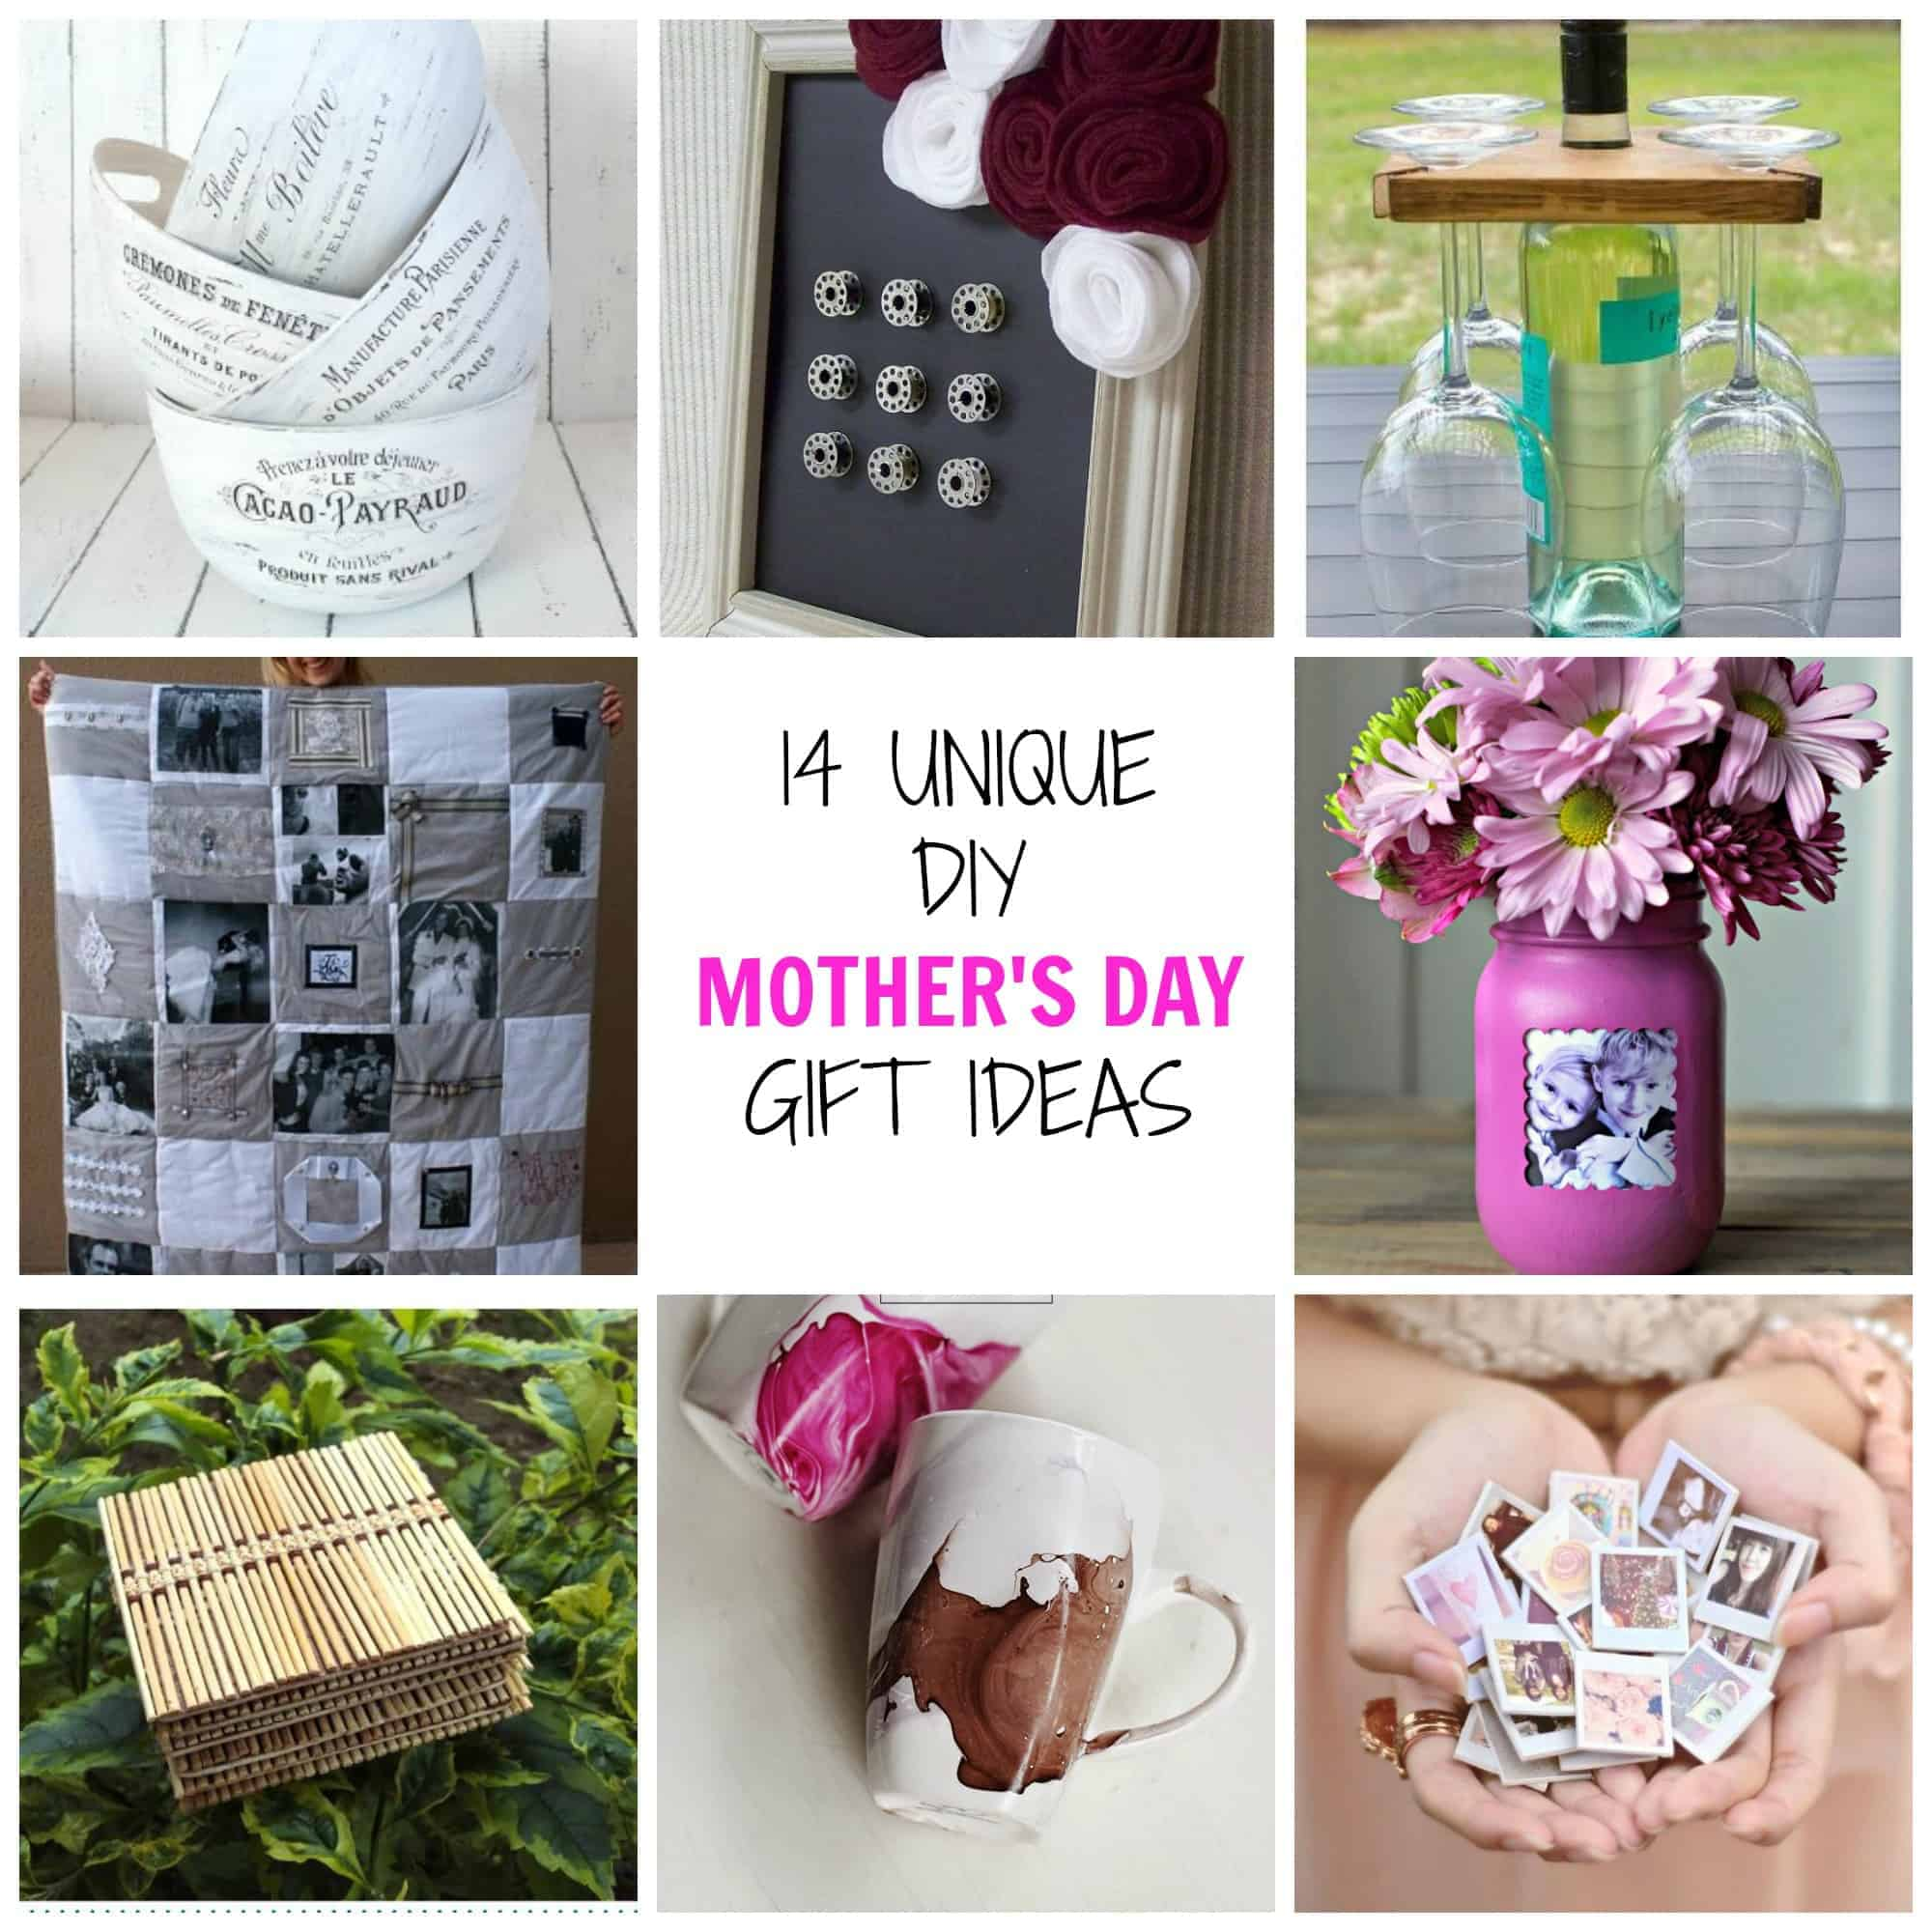 diy mothers day gift ideas  sc 1 st  Simplify Create Inspire & 14 Unique DIY Motheru0027s Day Gifts - Simplify Create Inspire